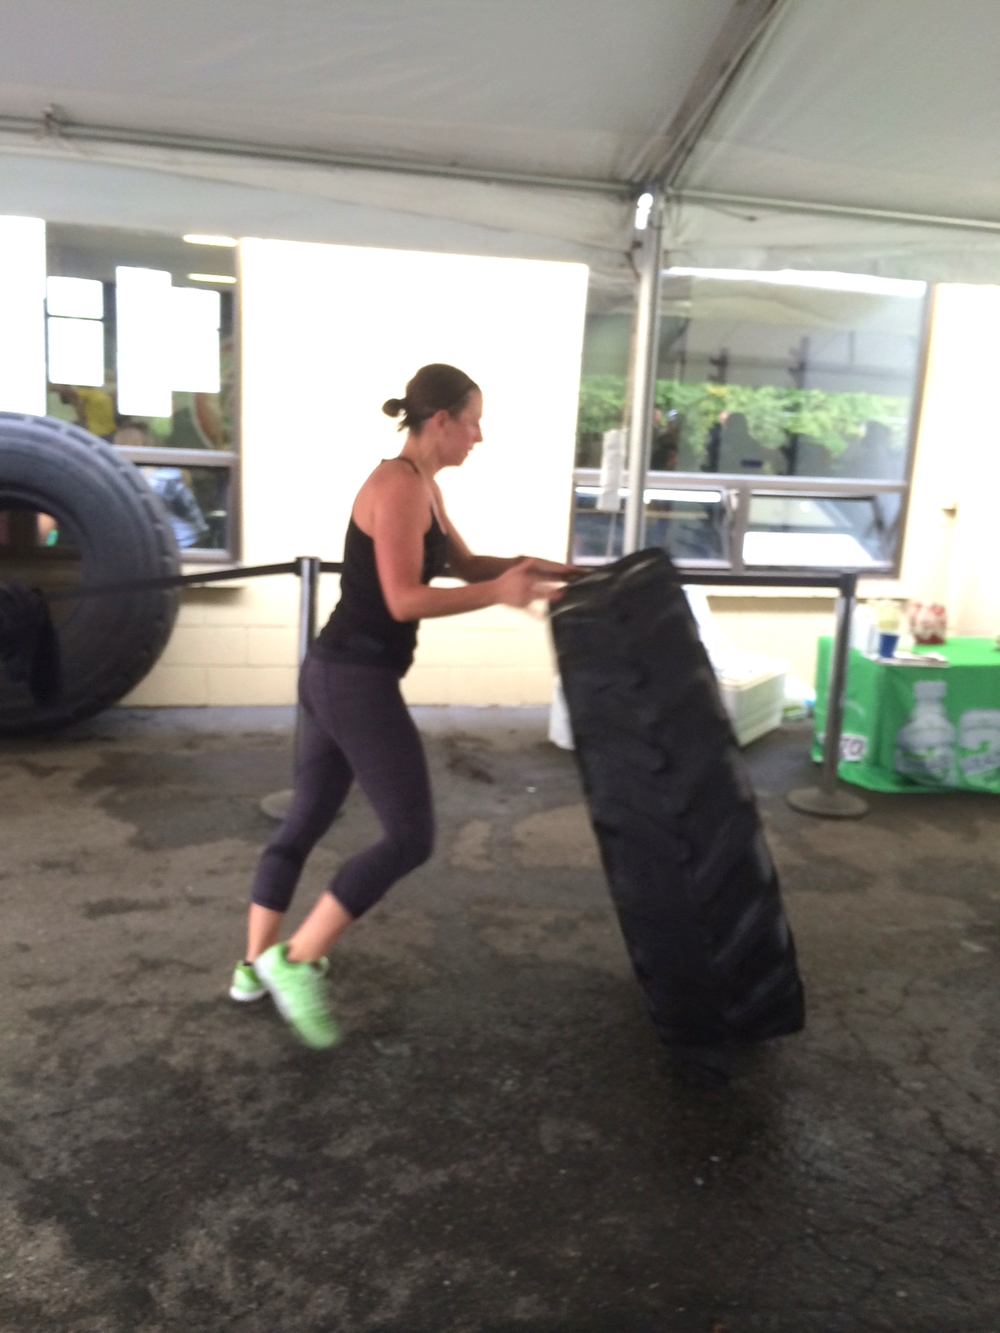 Julia flipping tires during another part of the surprise WOD